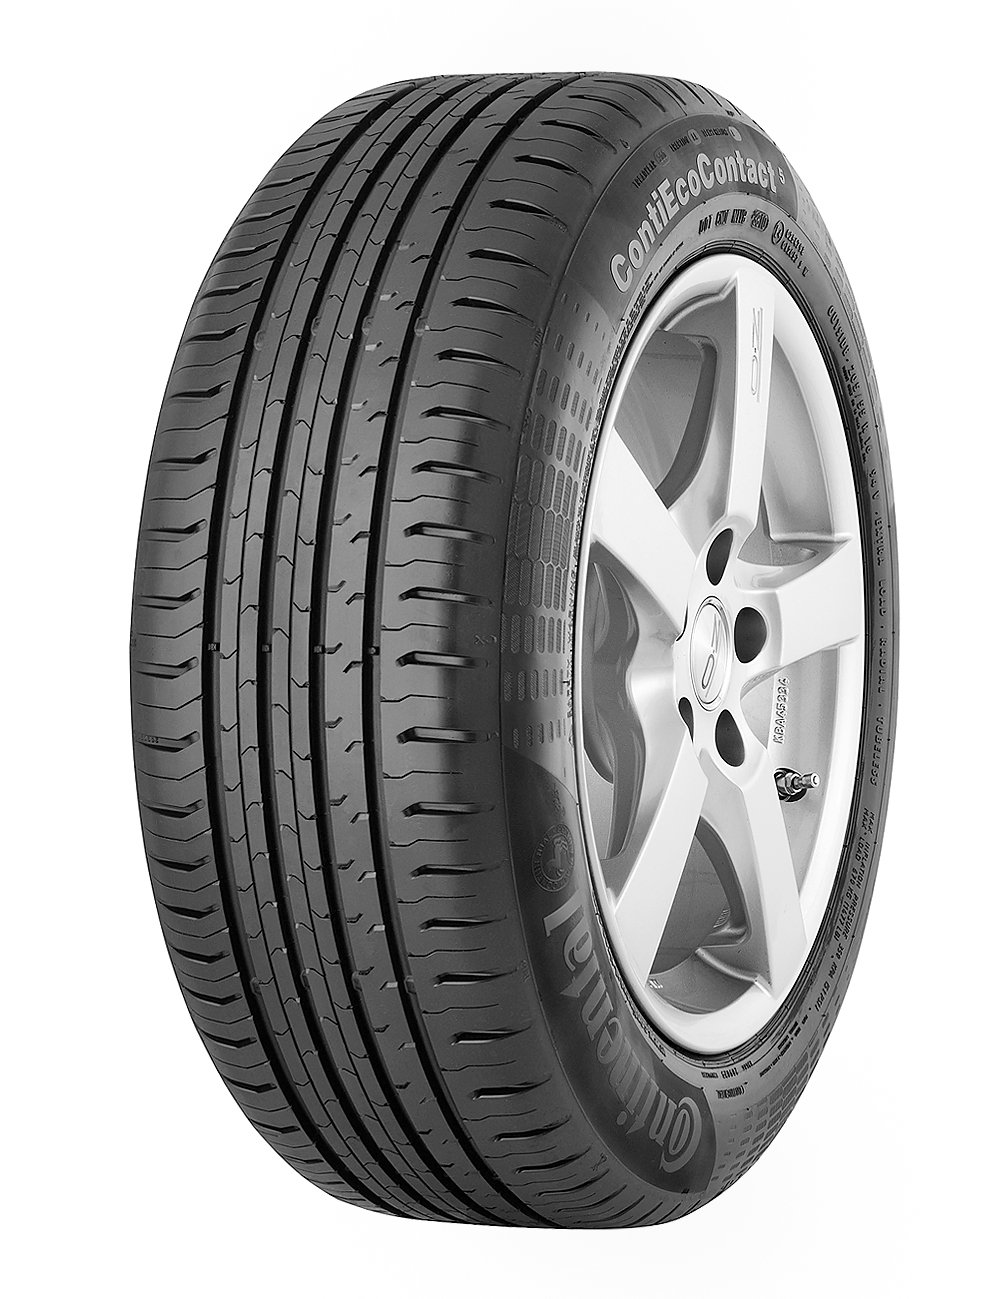 CONTINENTAL ContiEcoContact 5 MO  - 205/55/16 091V - B/B/71dB - Summer tire (Passenger Car) Continental Corporation